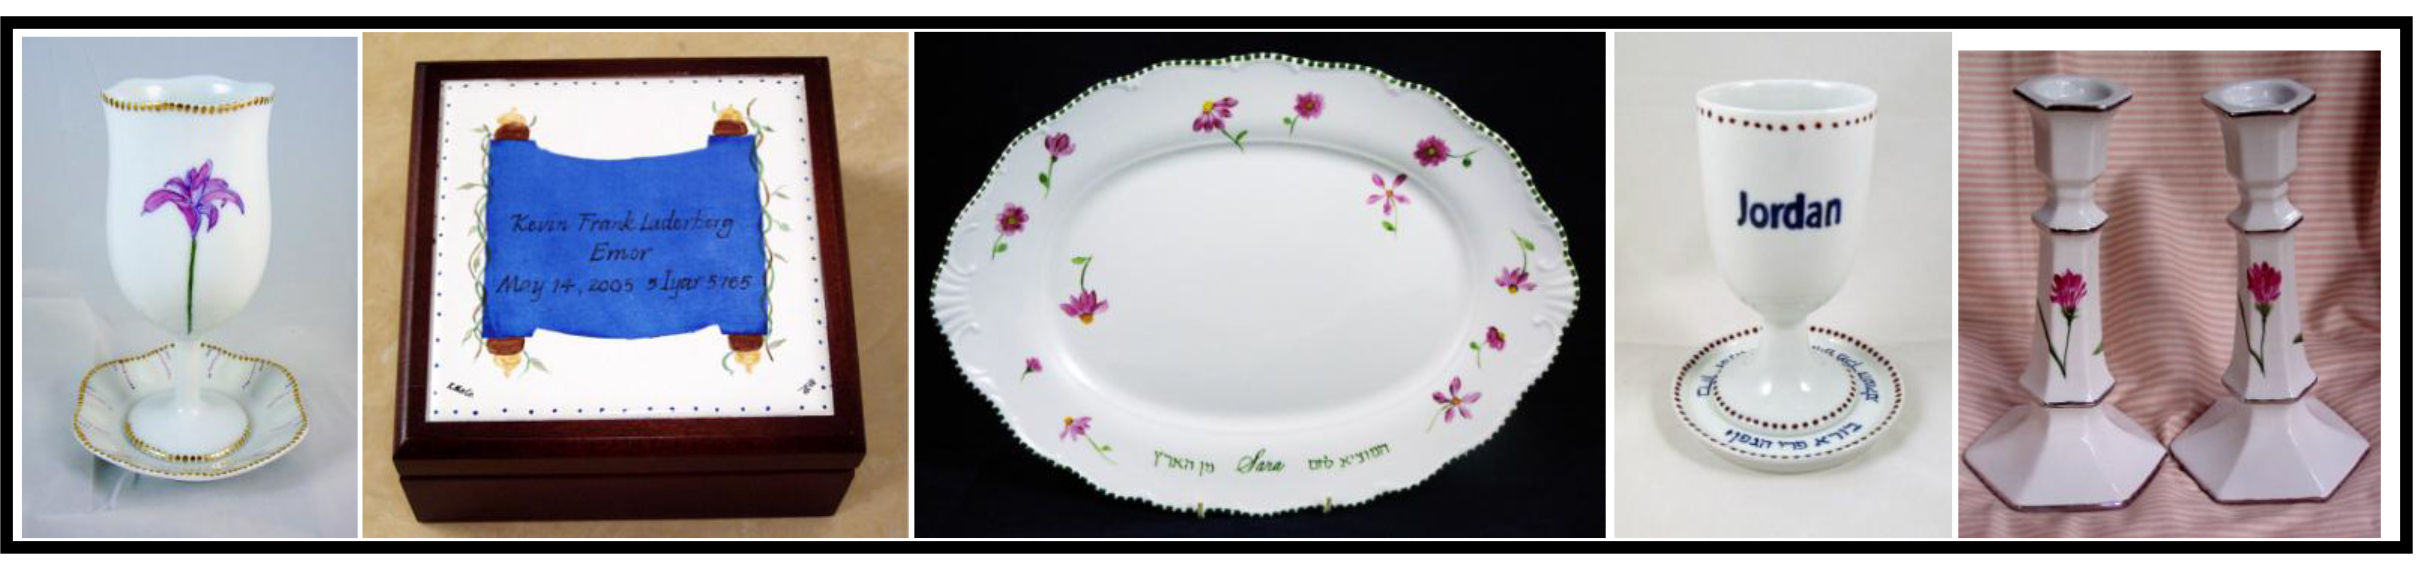 hand painted personalized porcelain Bar and Bat Mitzvah Gifts Kiddish Cup Kiddish Cup Sets Challah Tray boxes